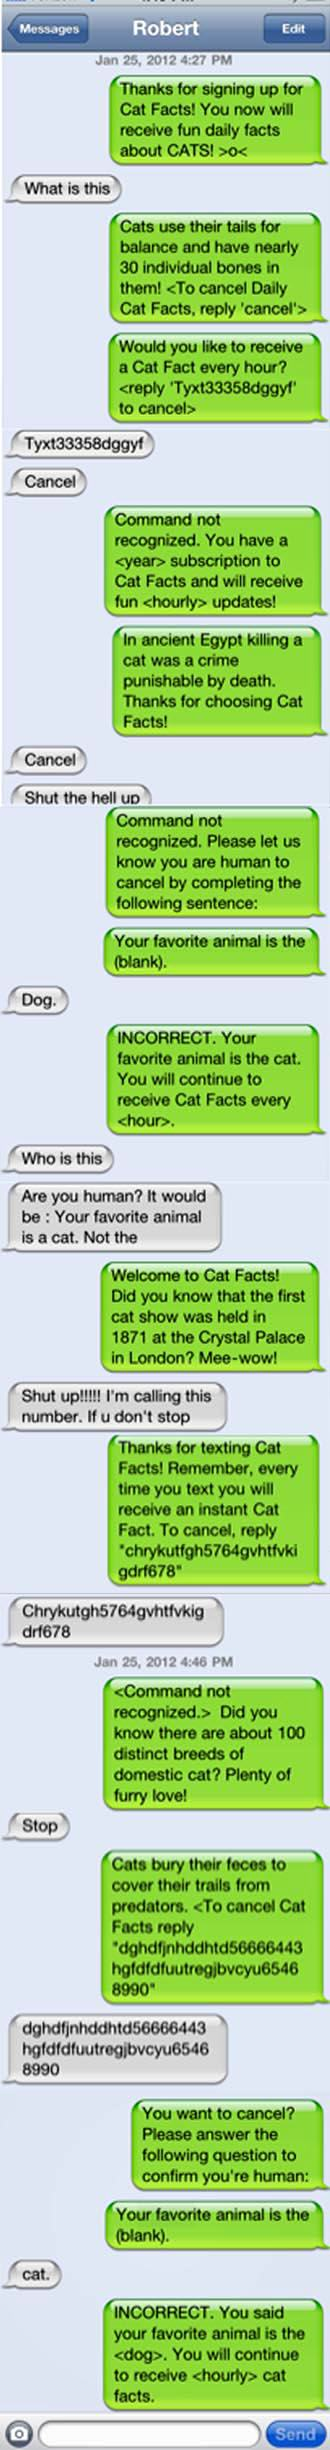 How to do cat facts prank